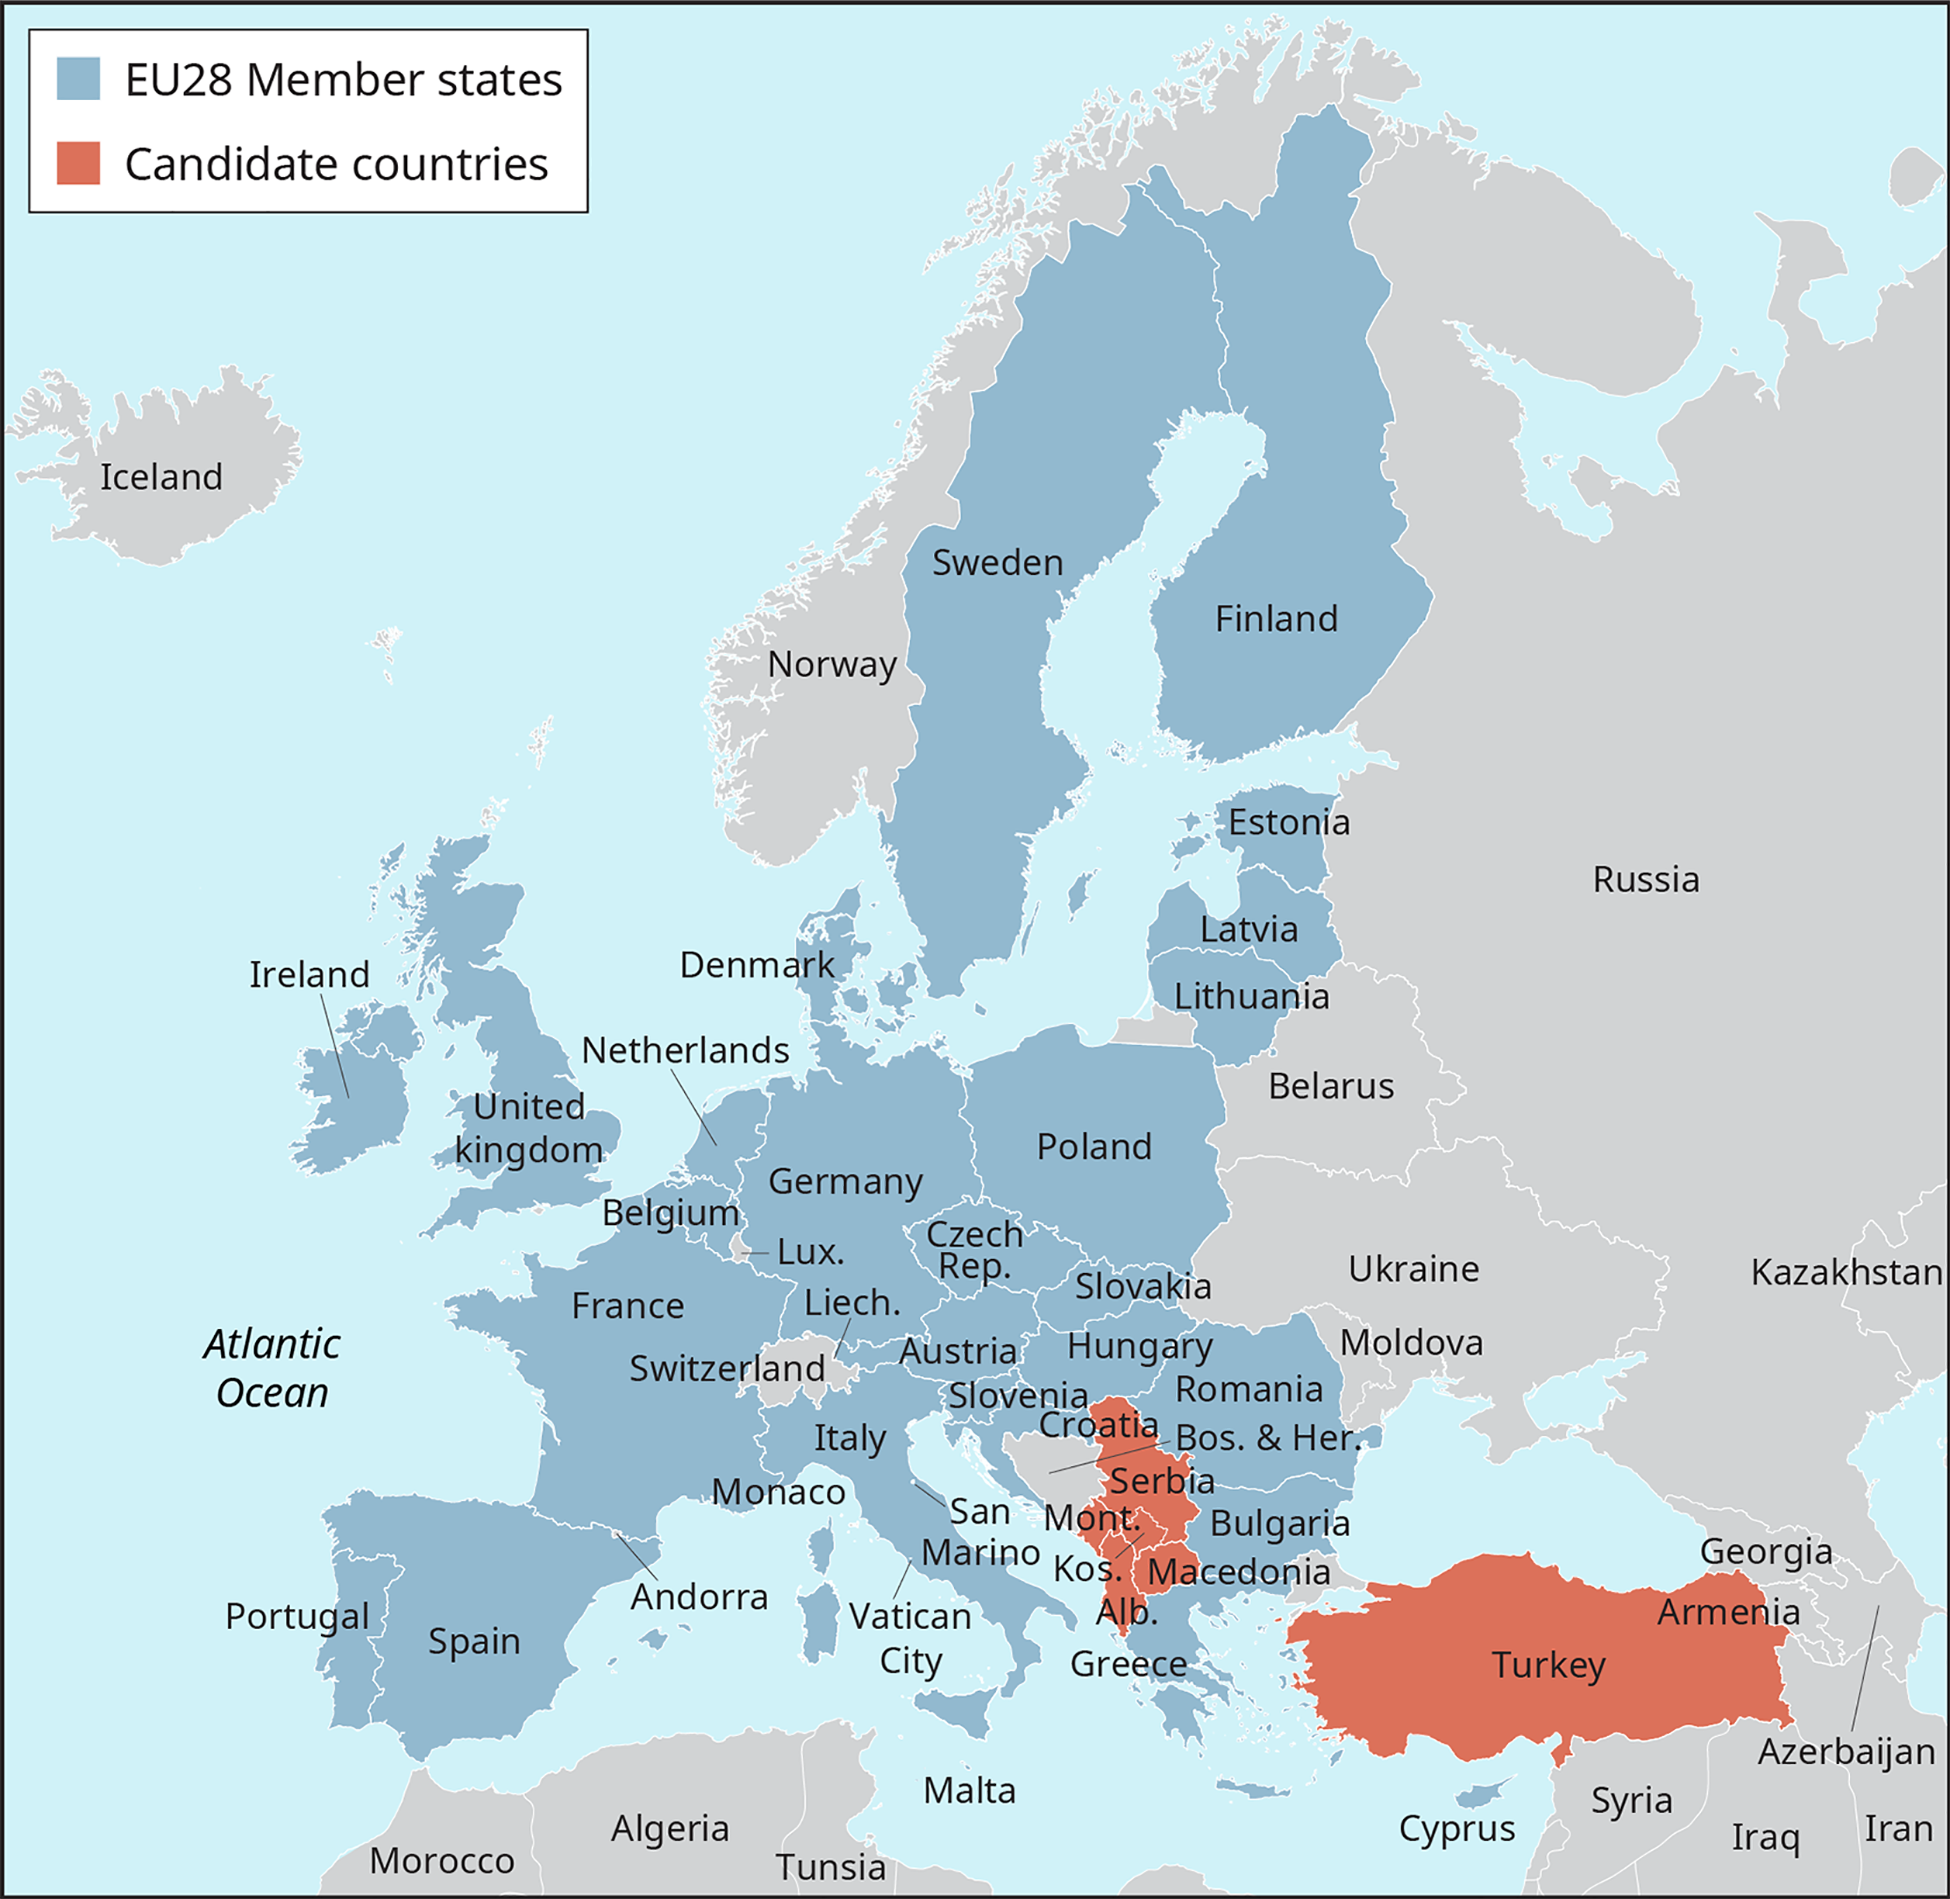 A map of Europe is color coded to show the E U 28 Member States, and those that are candidate countries.